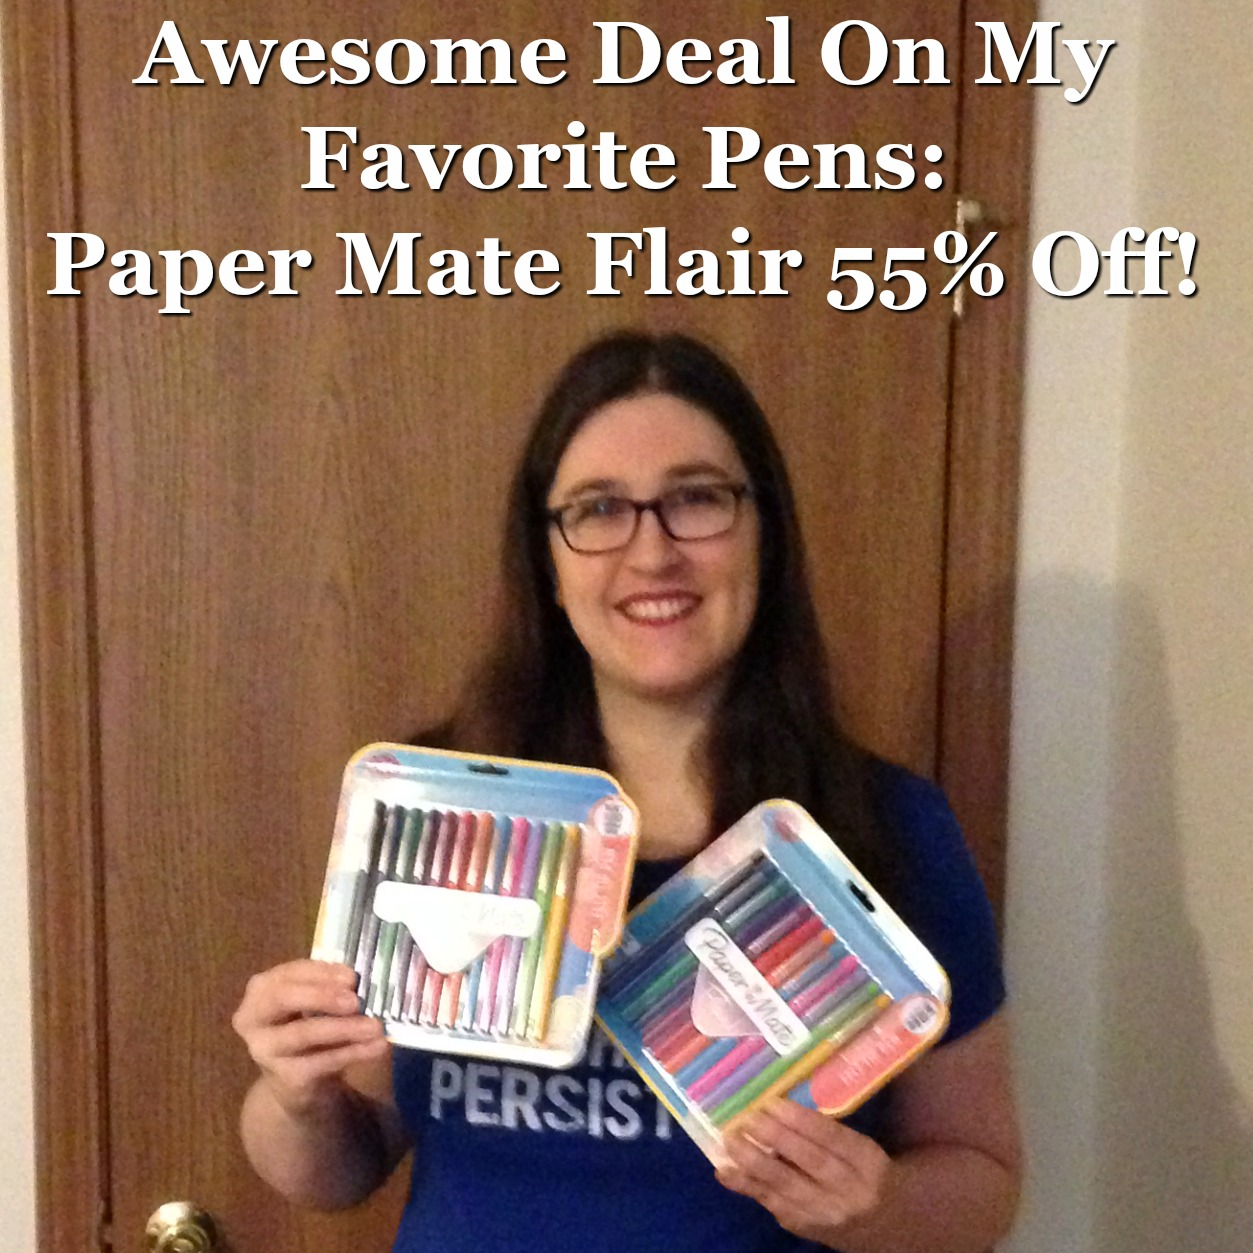 Taylor holding my favorite pens, the Paper Mate flairs